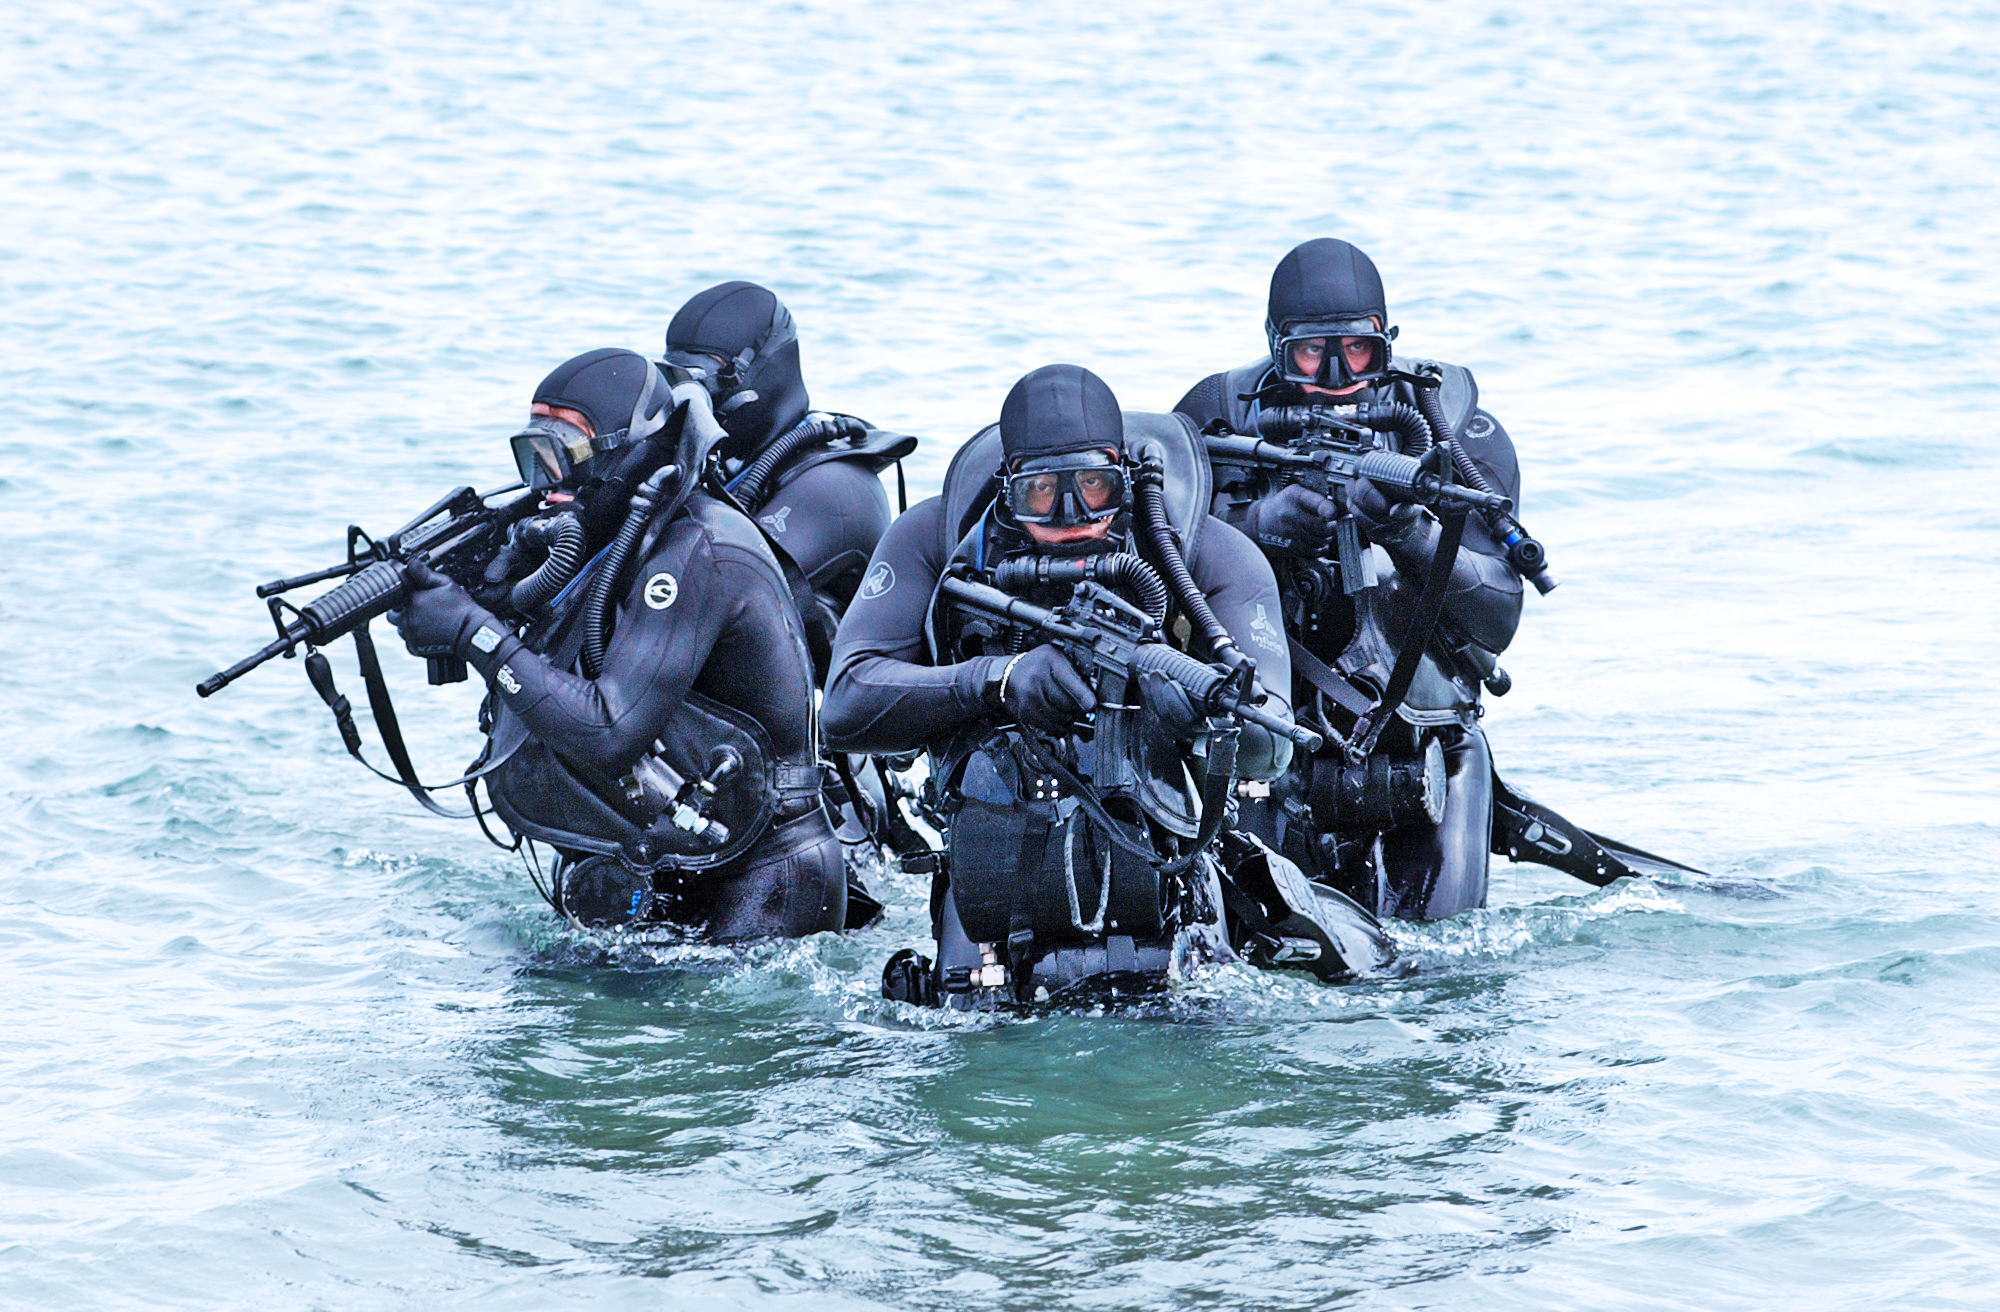 File:United States Navy SEALs 524.jpg - Wikimedia Commons